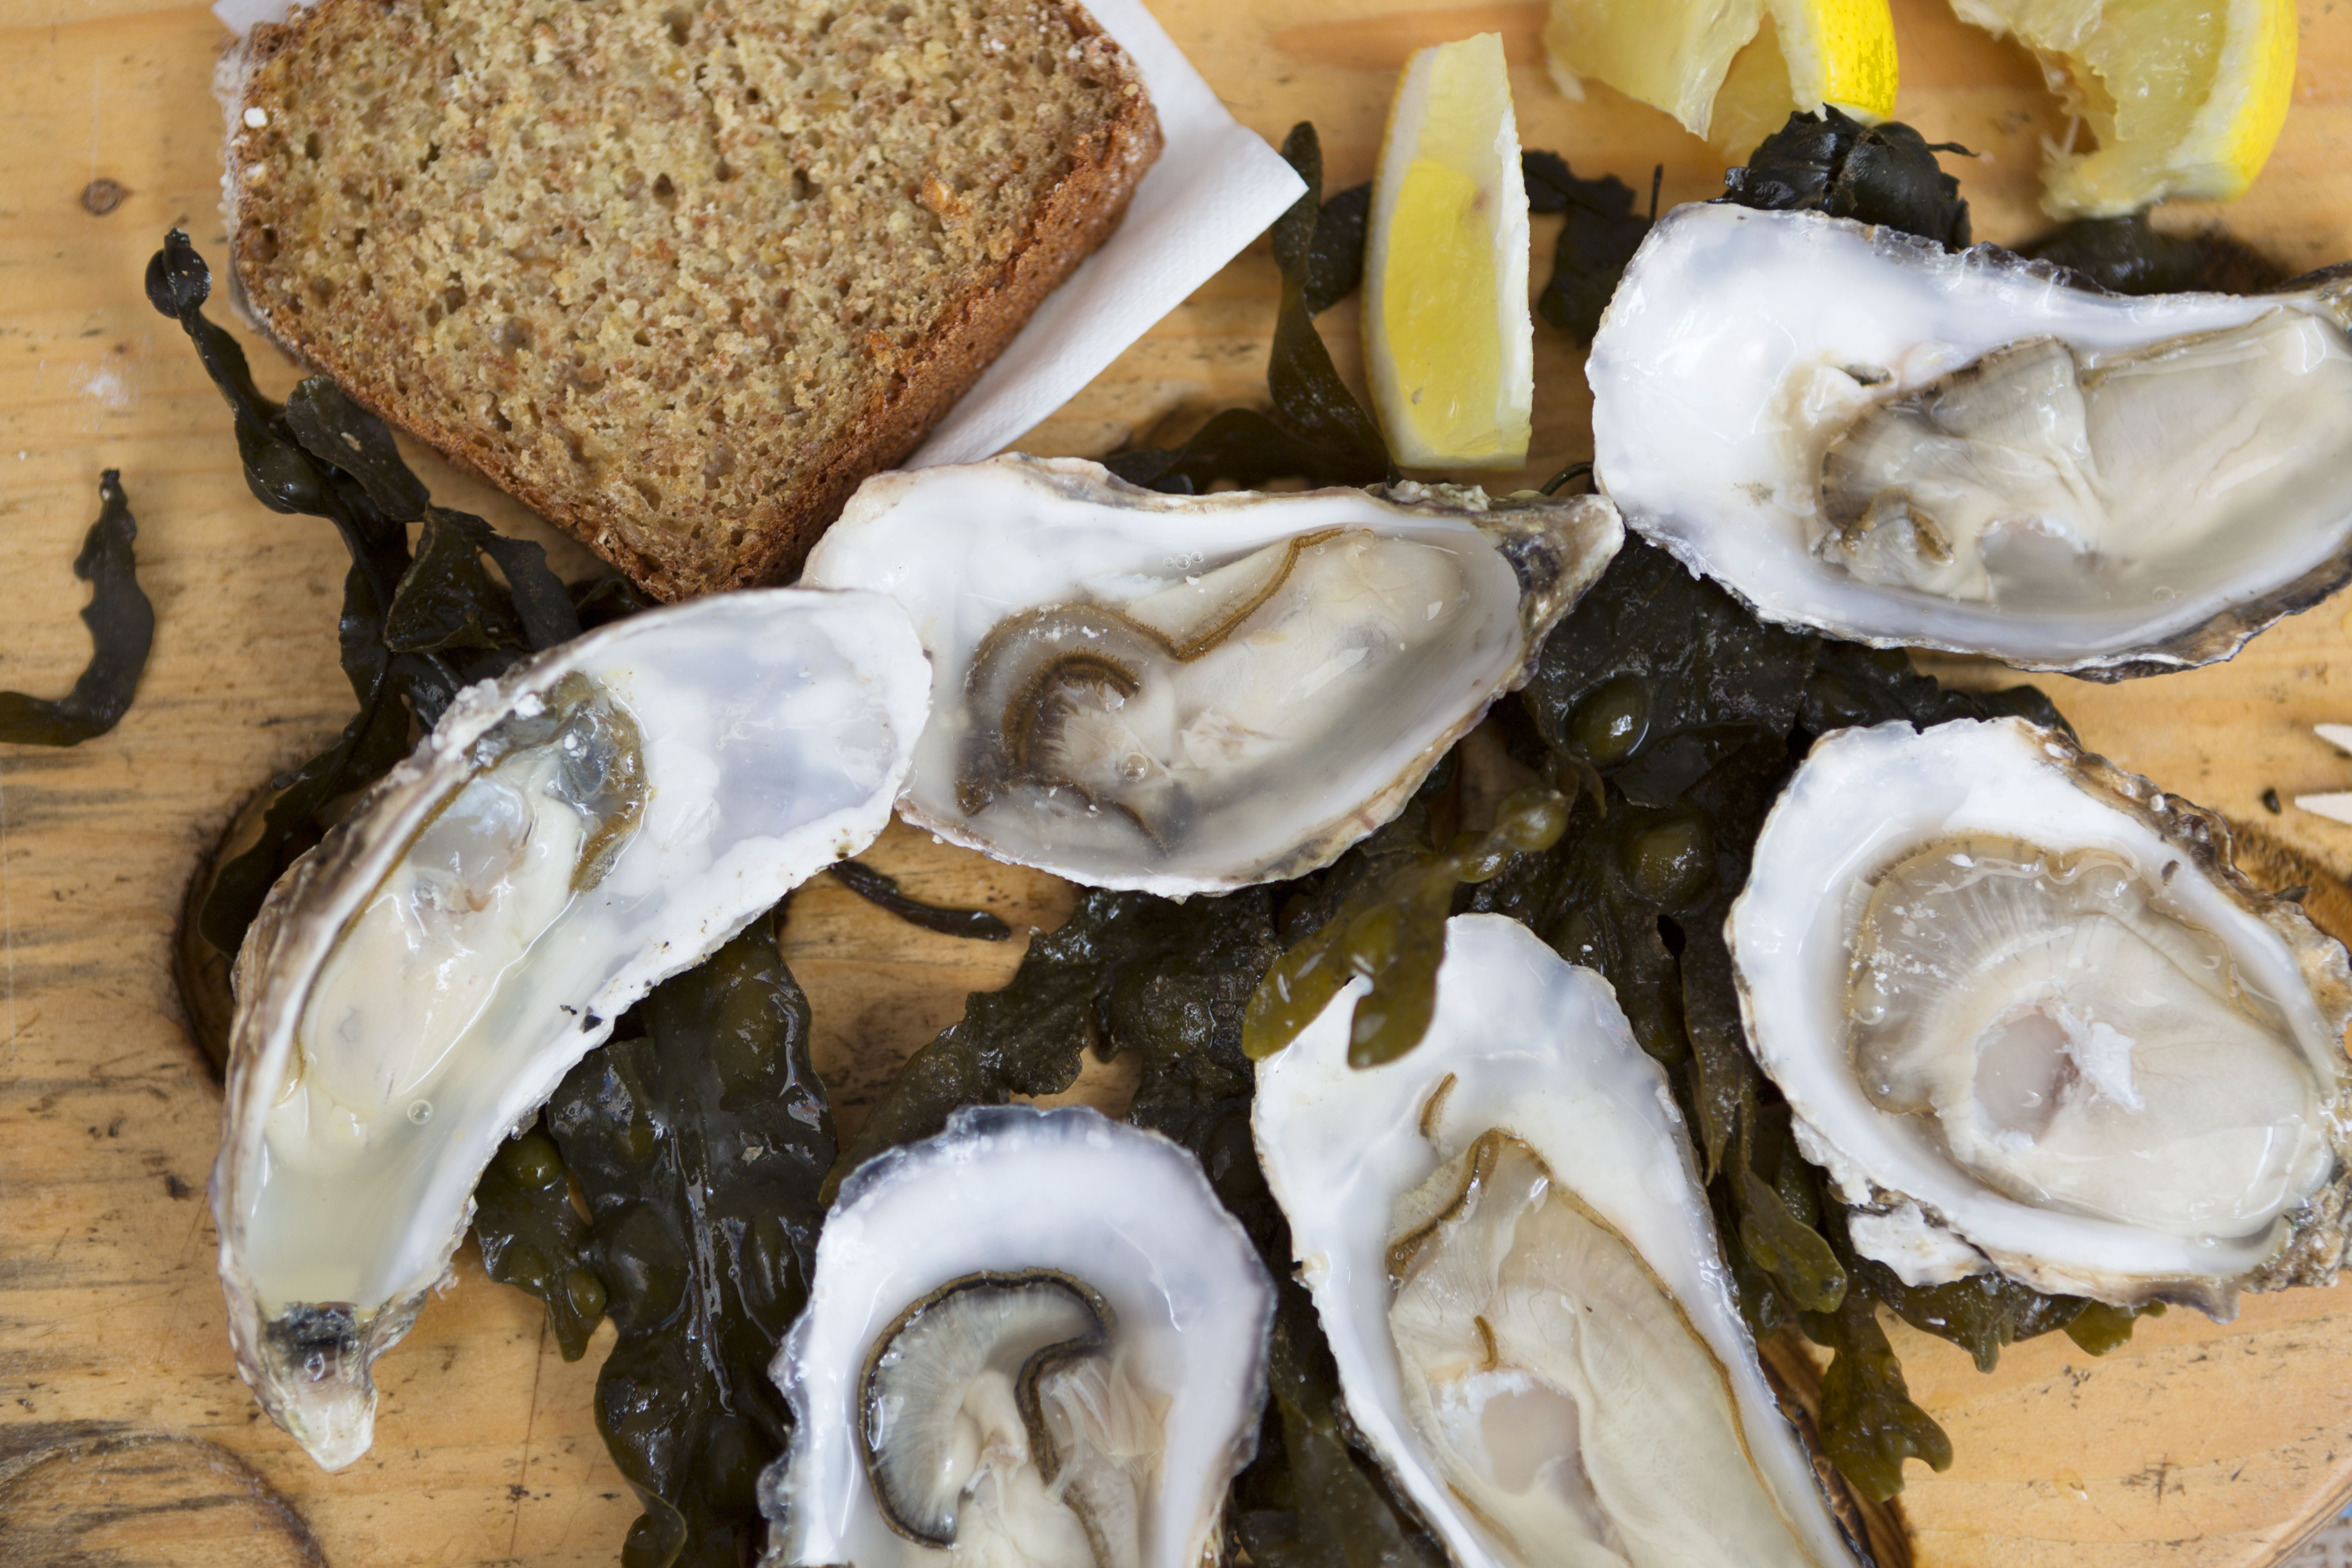 oyster nutrition facts: calories and health benefits